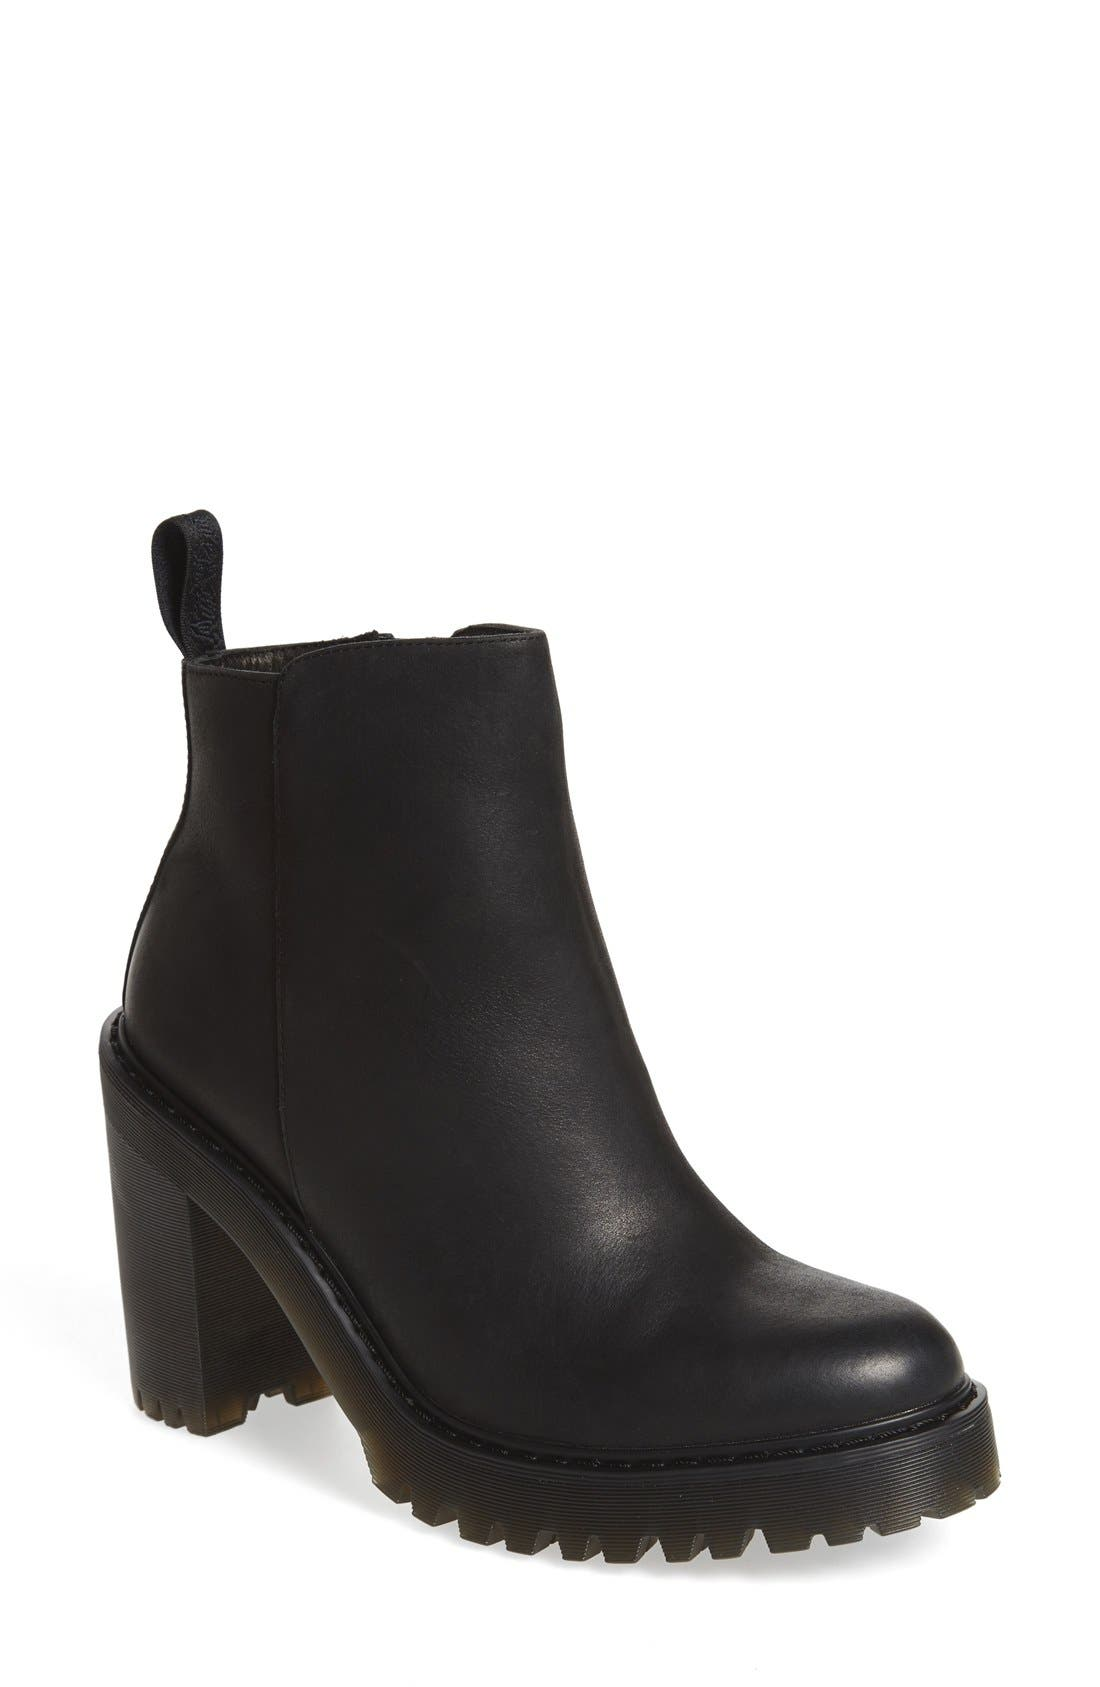 'Magdalena' Platform Bootie,                             Main thumbnail 1, color,                             Black Wyoming